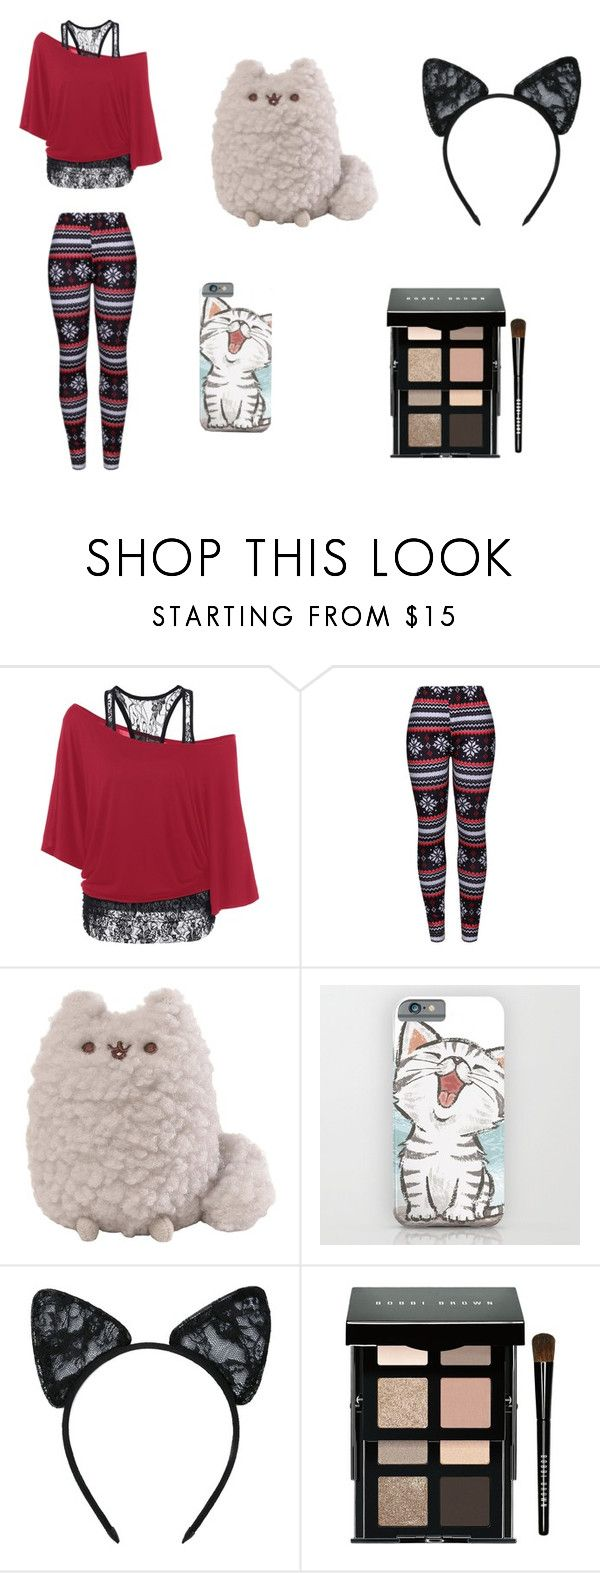 """""""Lazy Day"""" by sm00shie ❤ liked on Polyvore featuring WithChic, Maison Close and Bobbi Brown Cosmetics"""